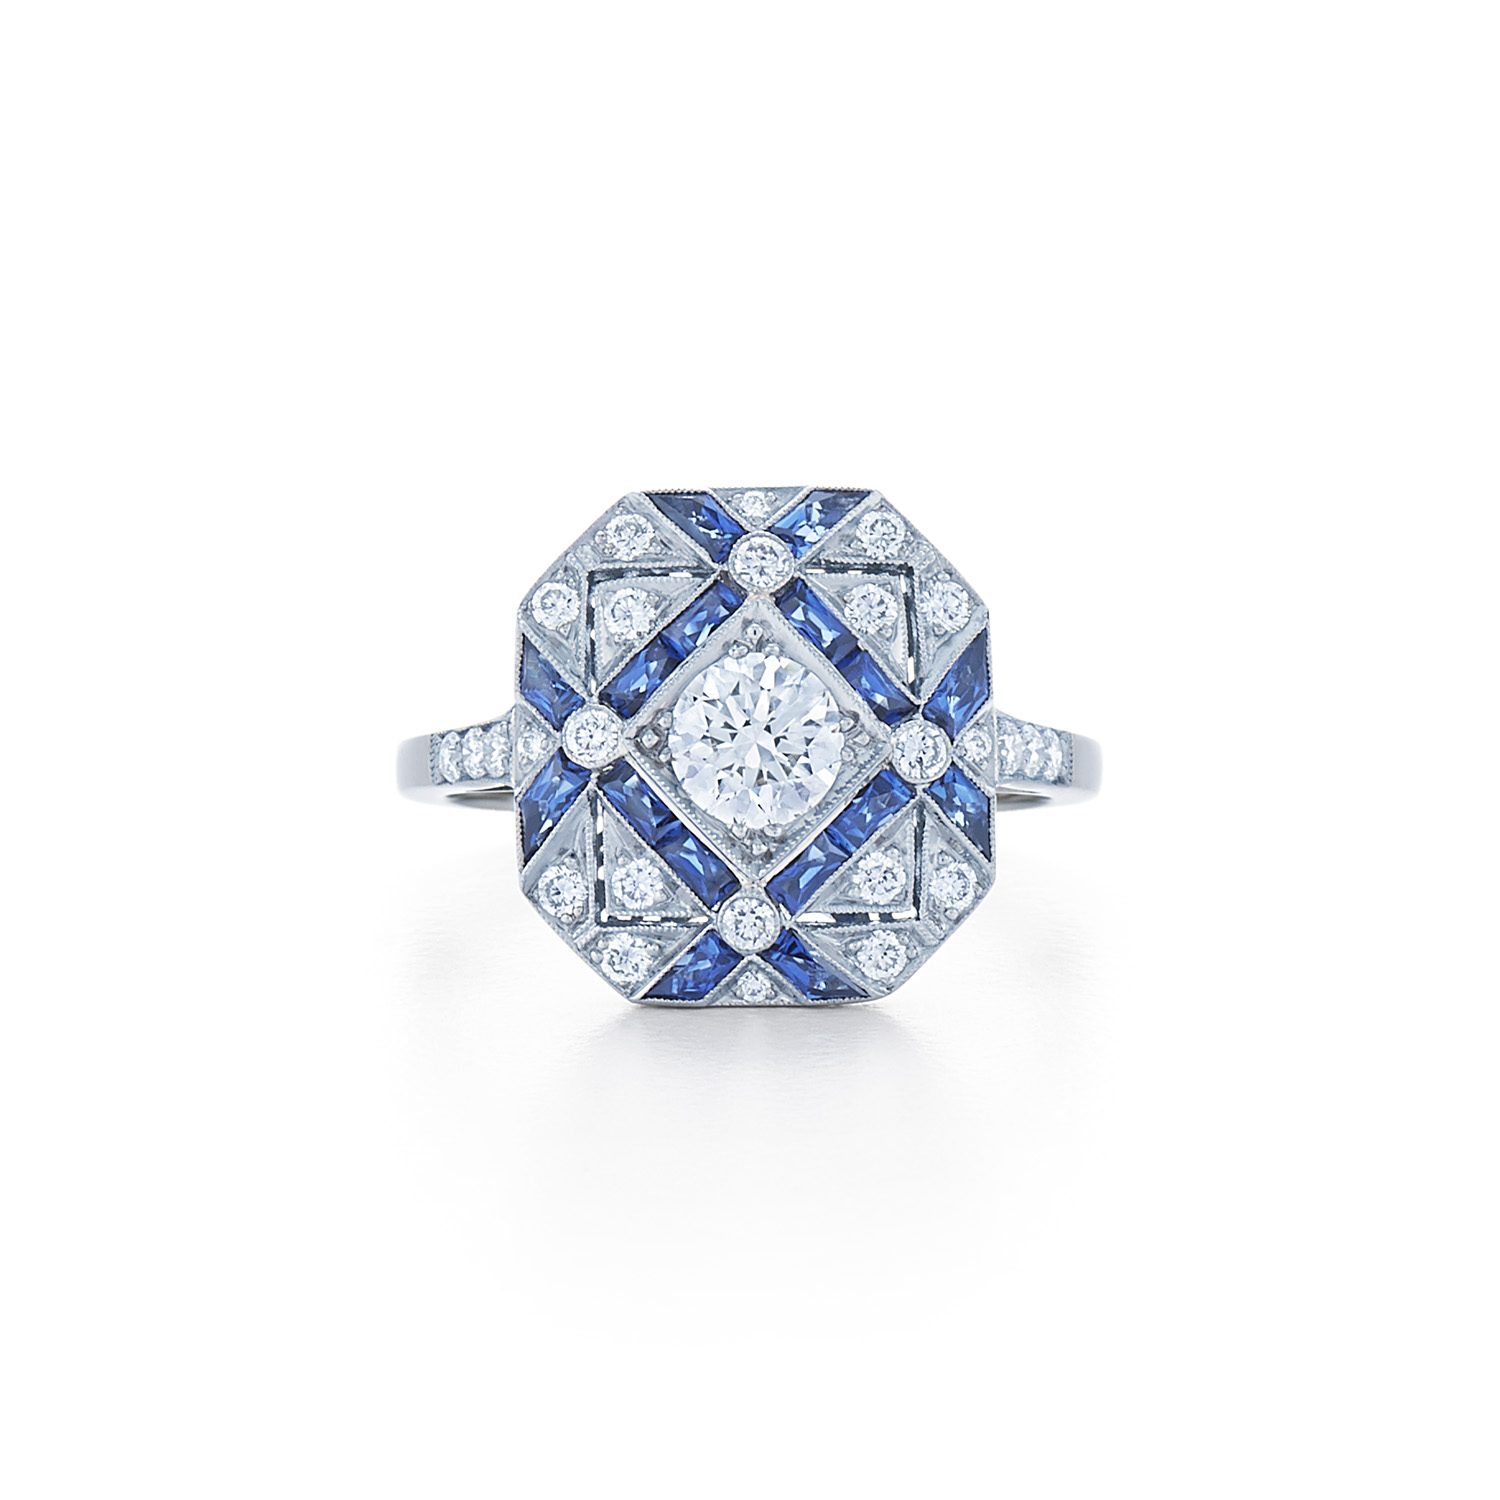 ring gem york hunt jpg cut diamond visit to gemtalkblog kwiat new rings engagement round